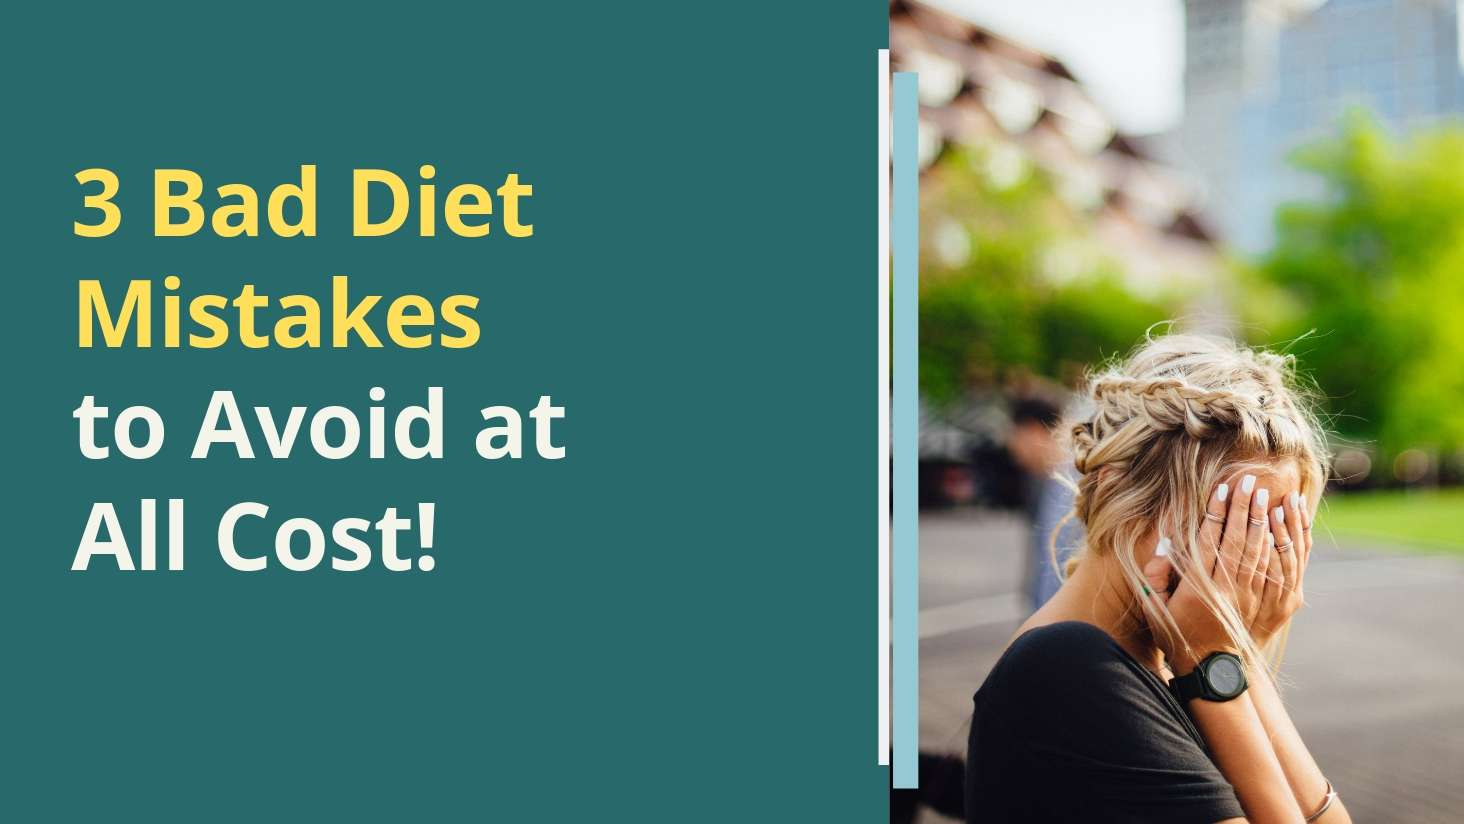 3-Bad-Diet-Mistakes-to-Avoid-at-All-Cost!